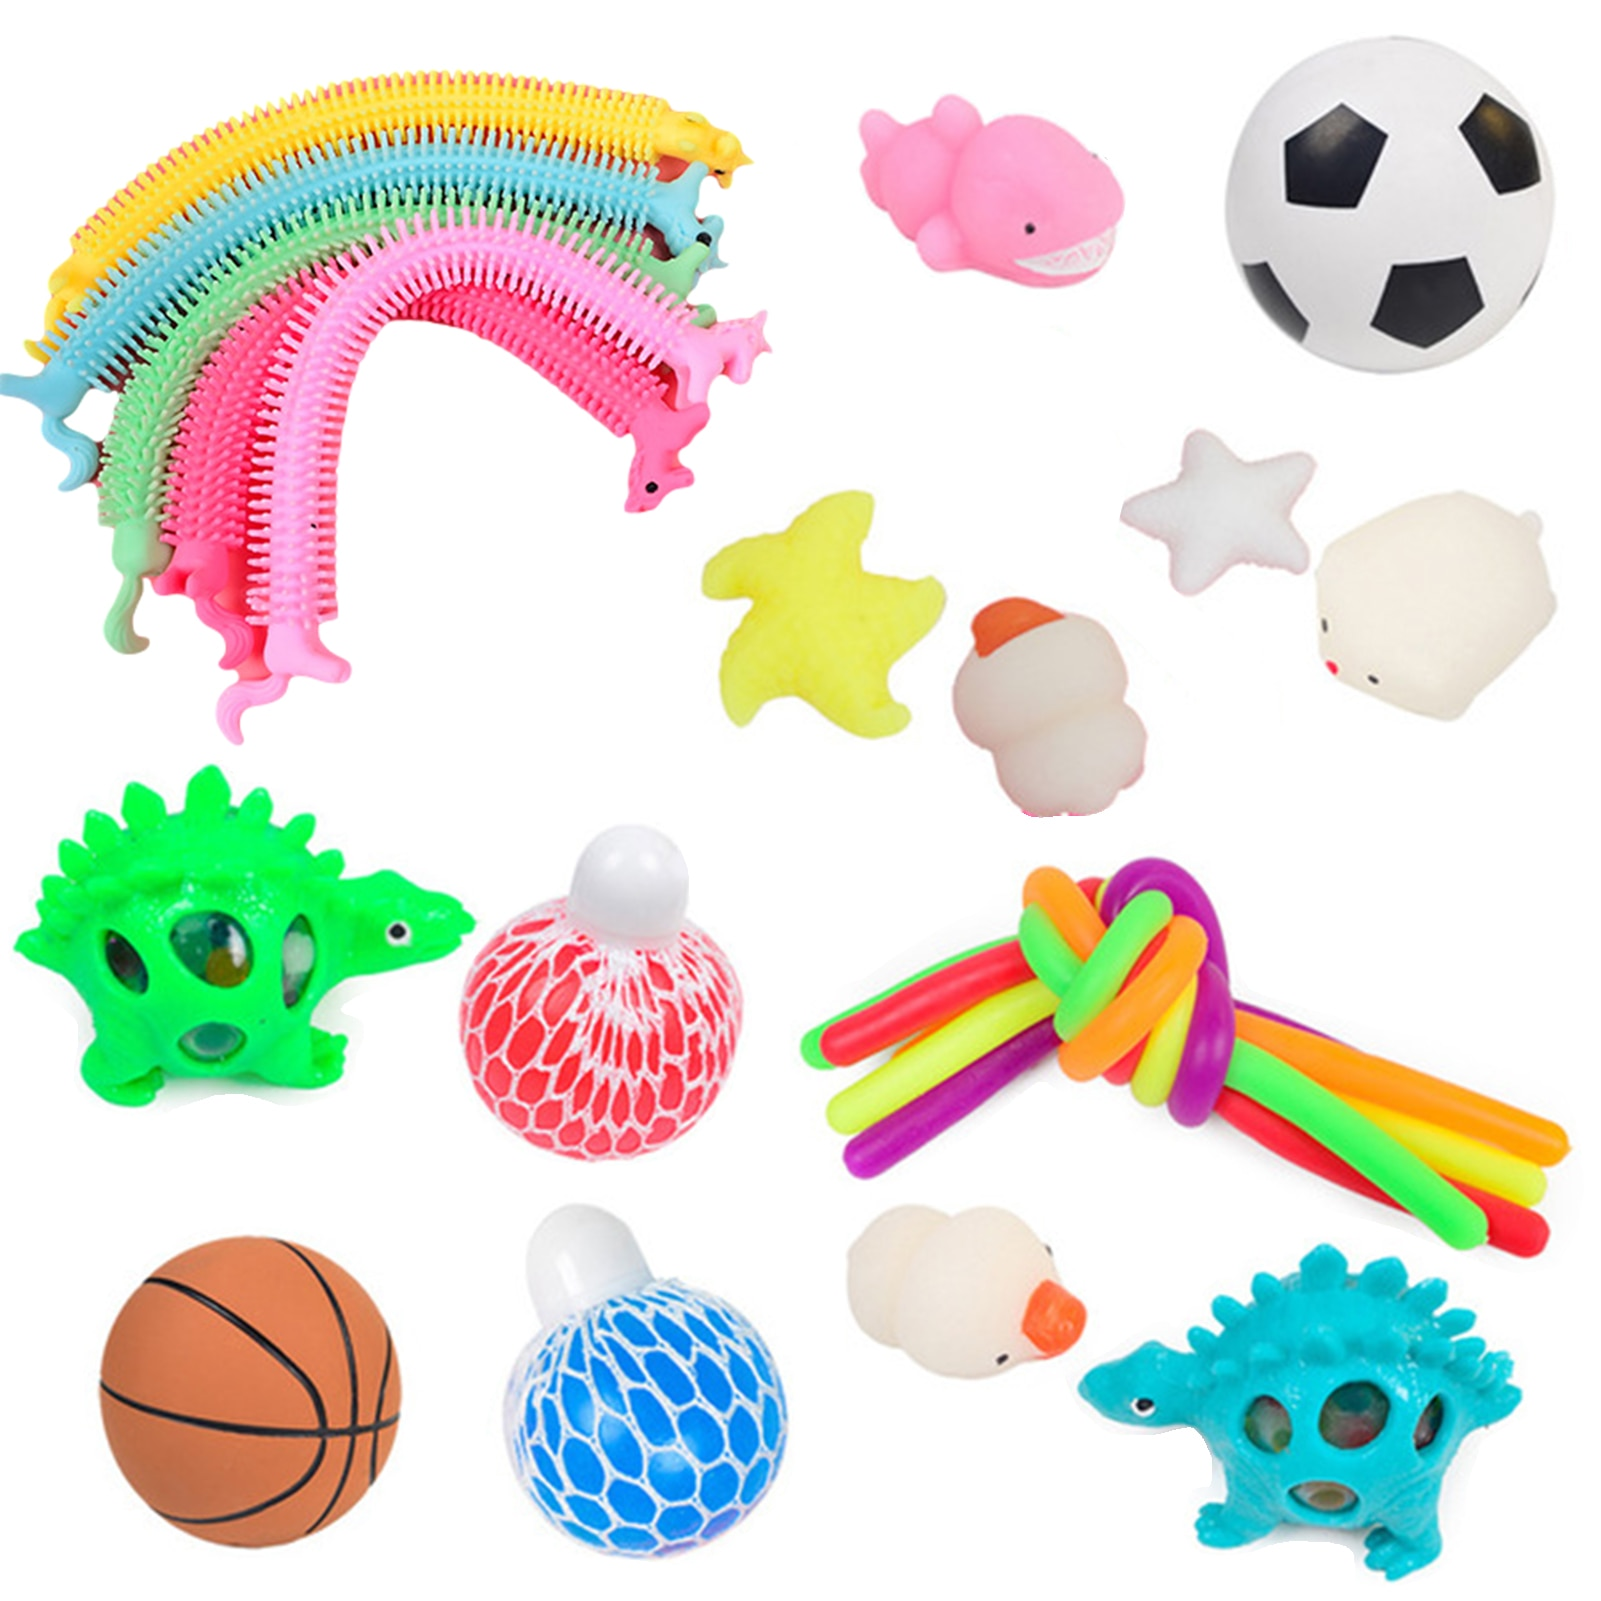 22PCS Pack Fidget Sensory Toy Set Stress Relief Toys Autism Anxiety Relief Stress Pop Bubble Fidget Toys For Kids Adults New enlarge